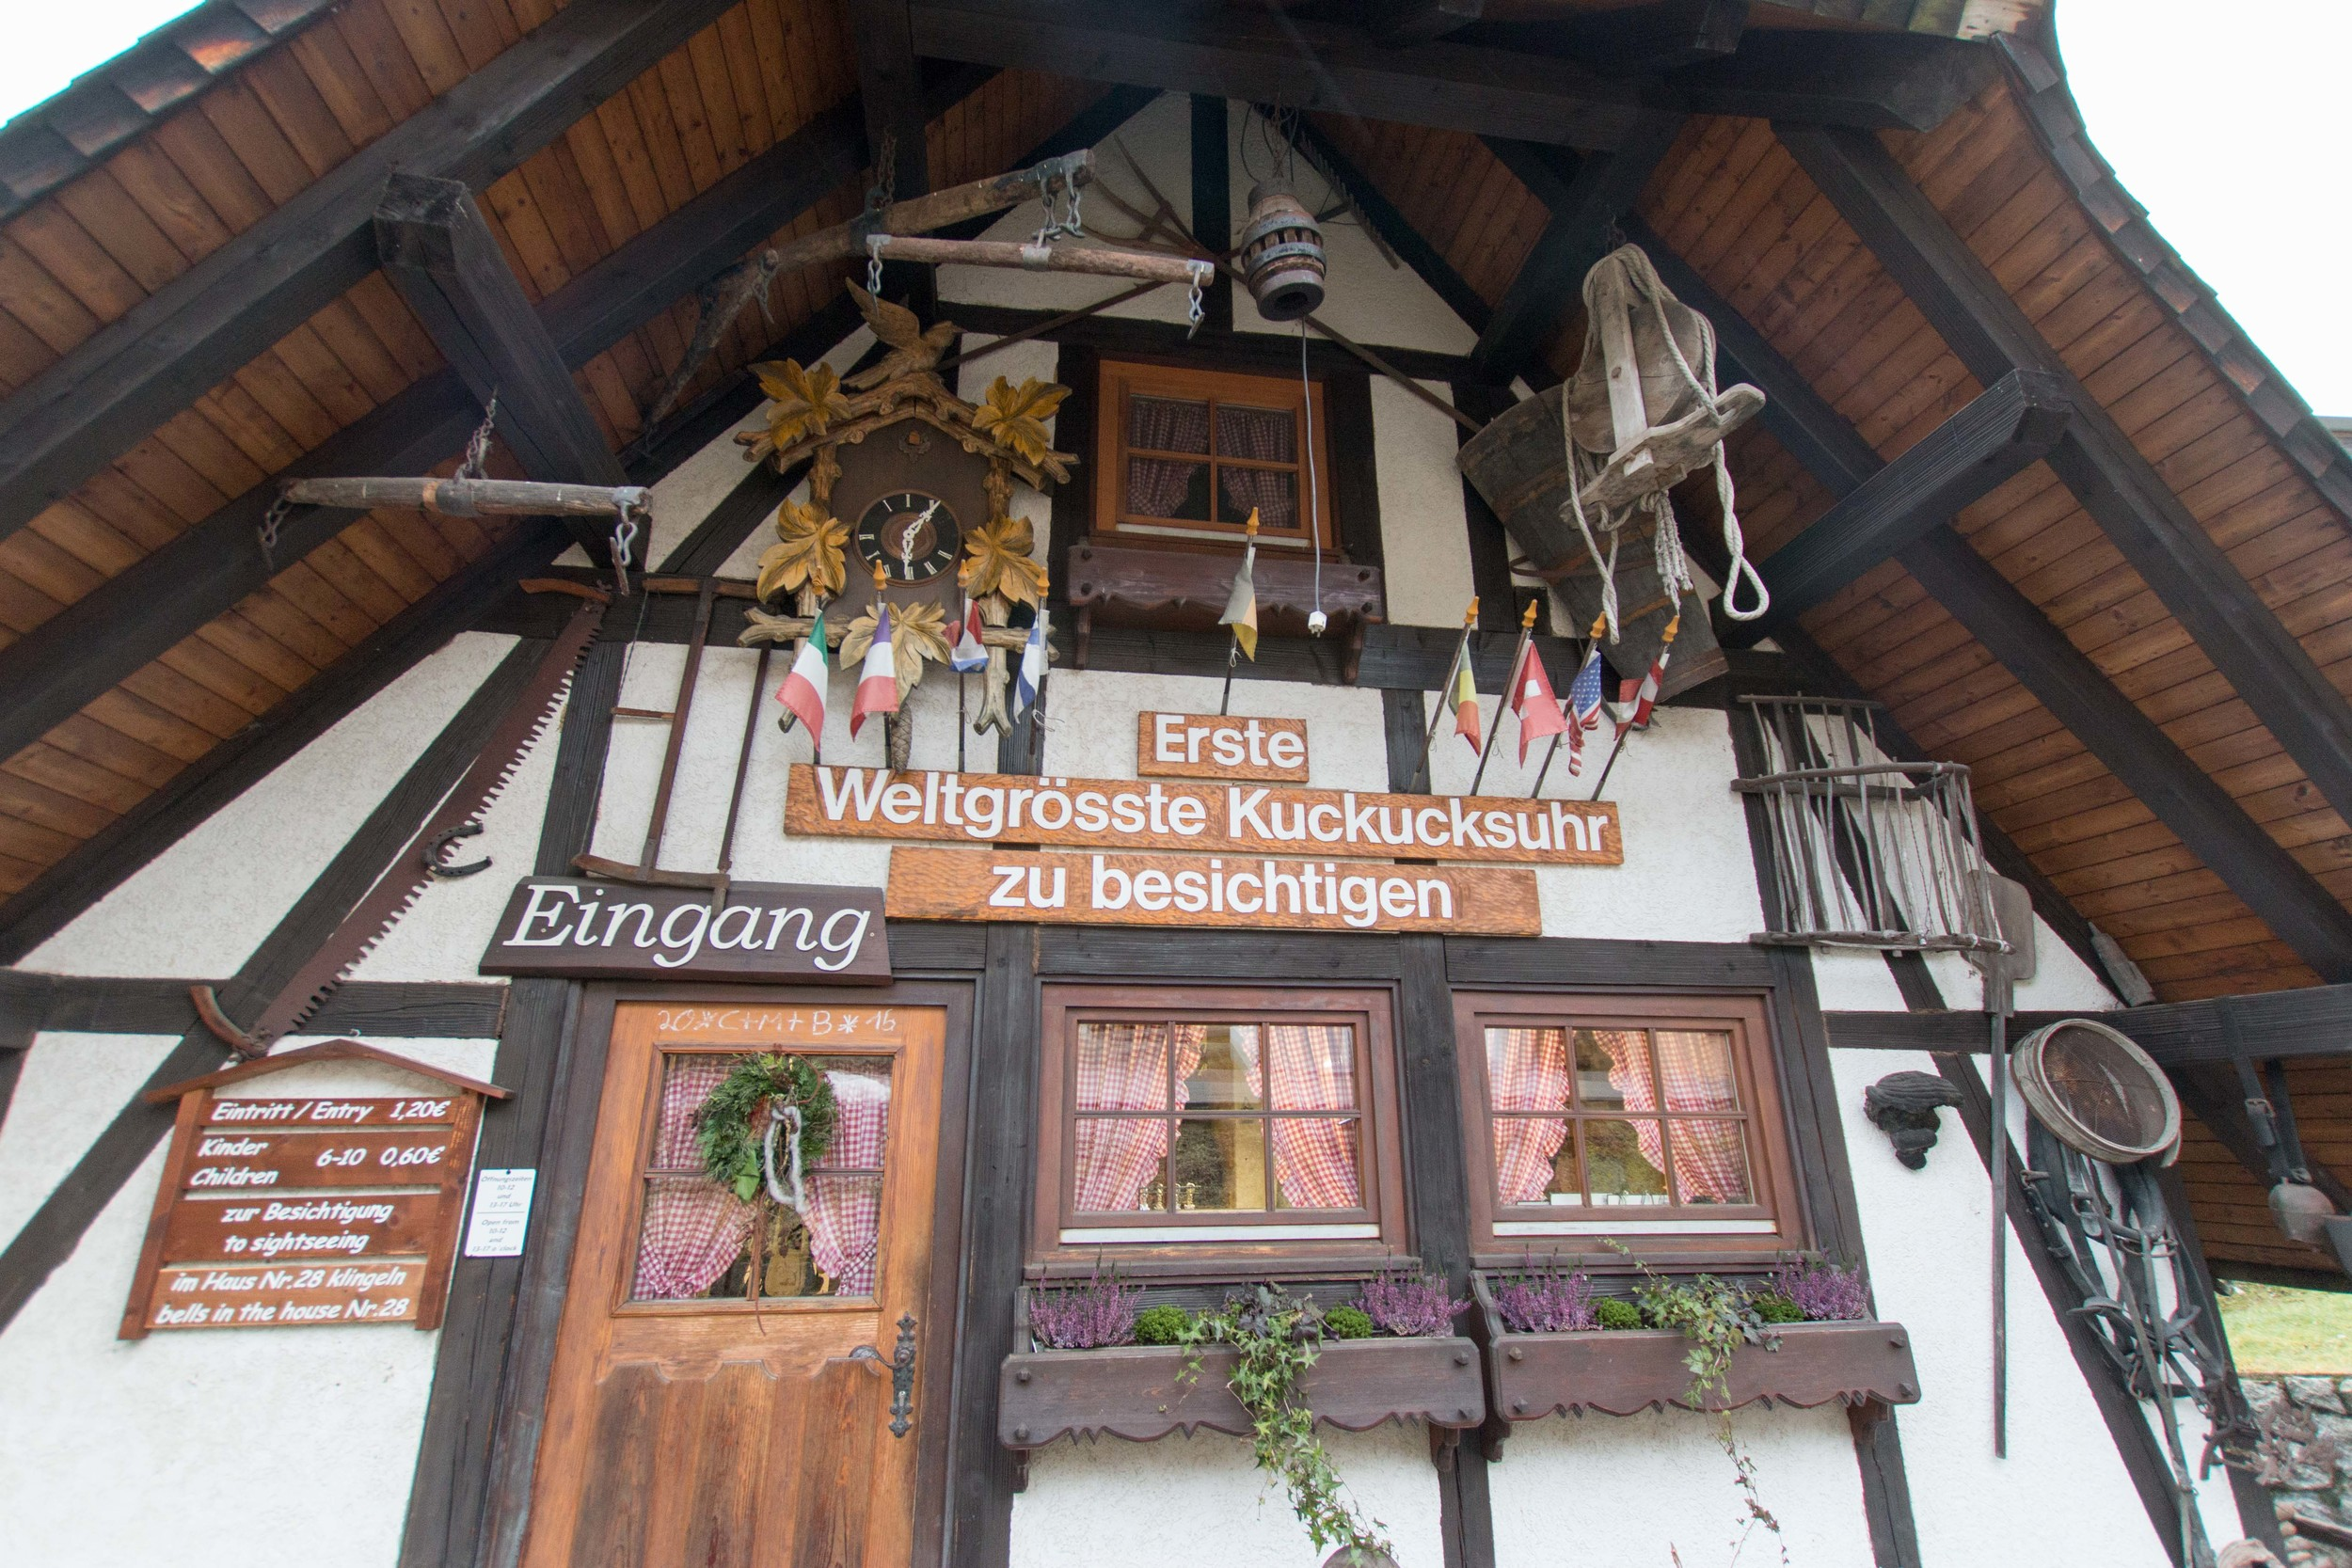 The World's largest cuckoo clock in Triberg